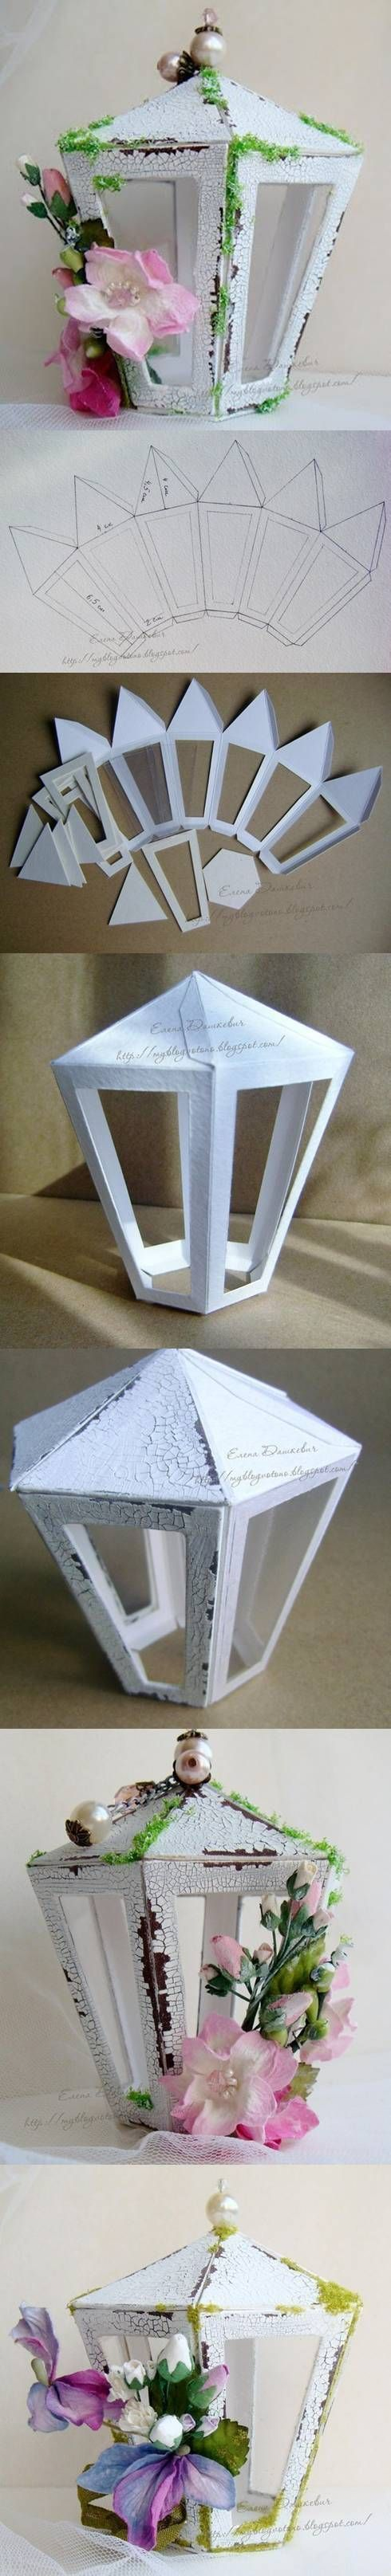 Over at Trucs and Bricolages there is this cute paper lantern template and tutorial on how to give it a cool faux finish. This is a great design that would be perfect to use as a centerpiece indoor…